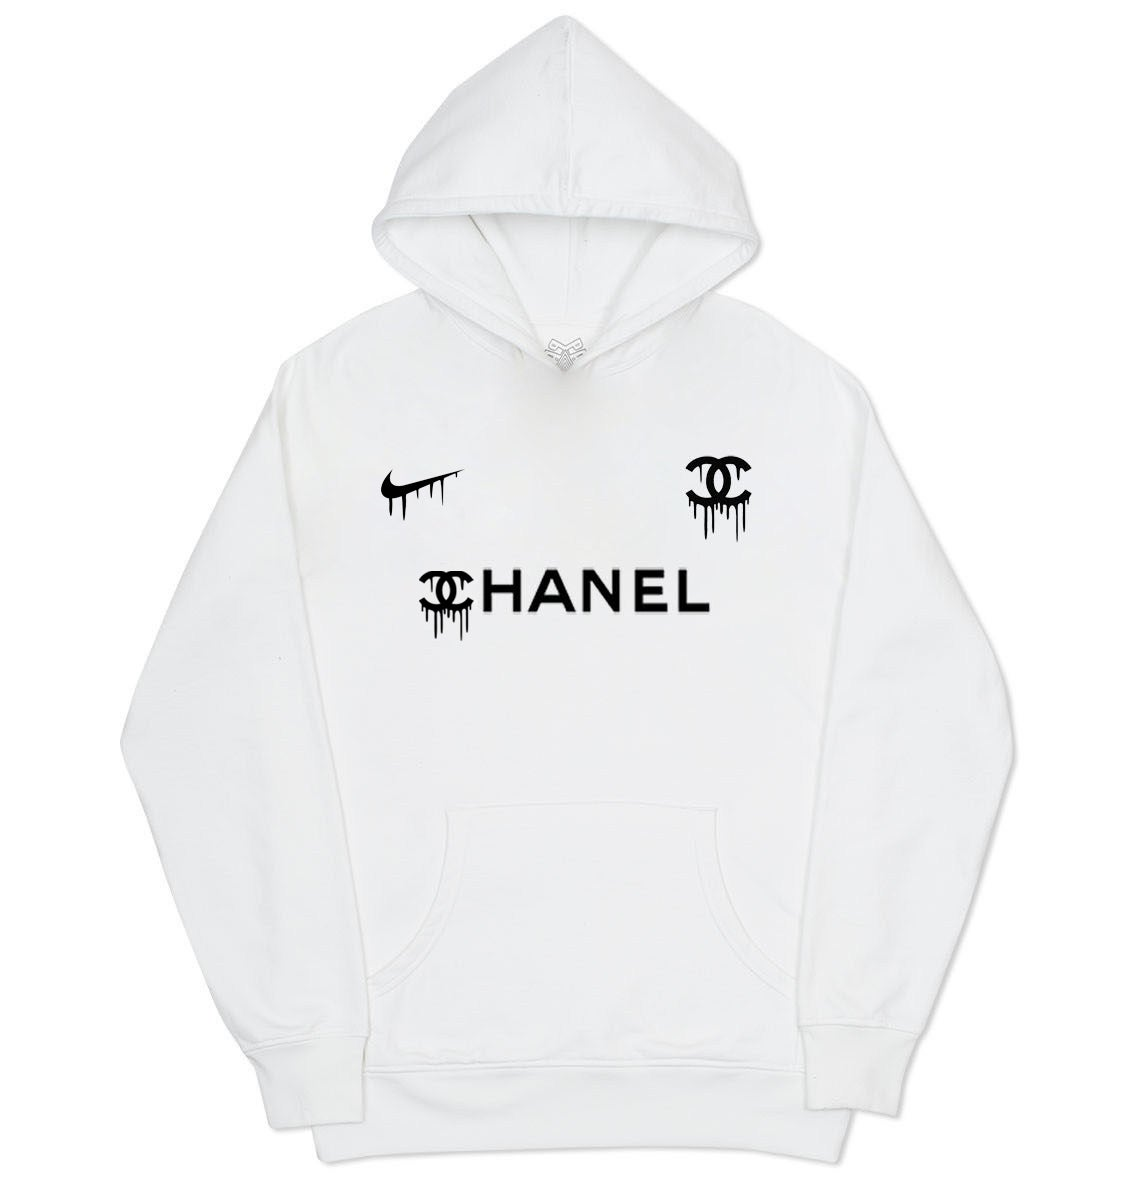 chanel hoodie. image of nike x chanel hoodie - white